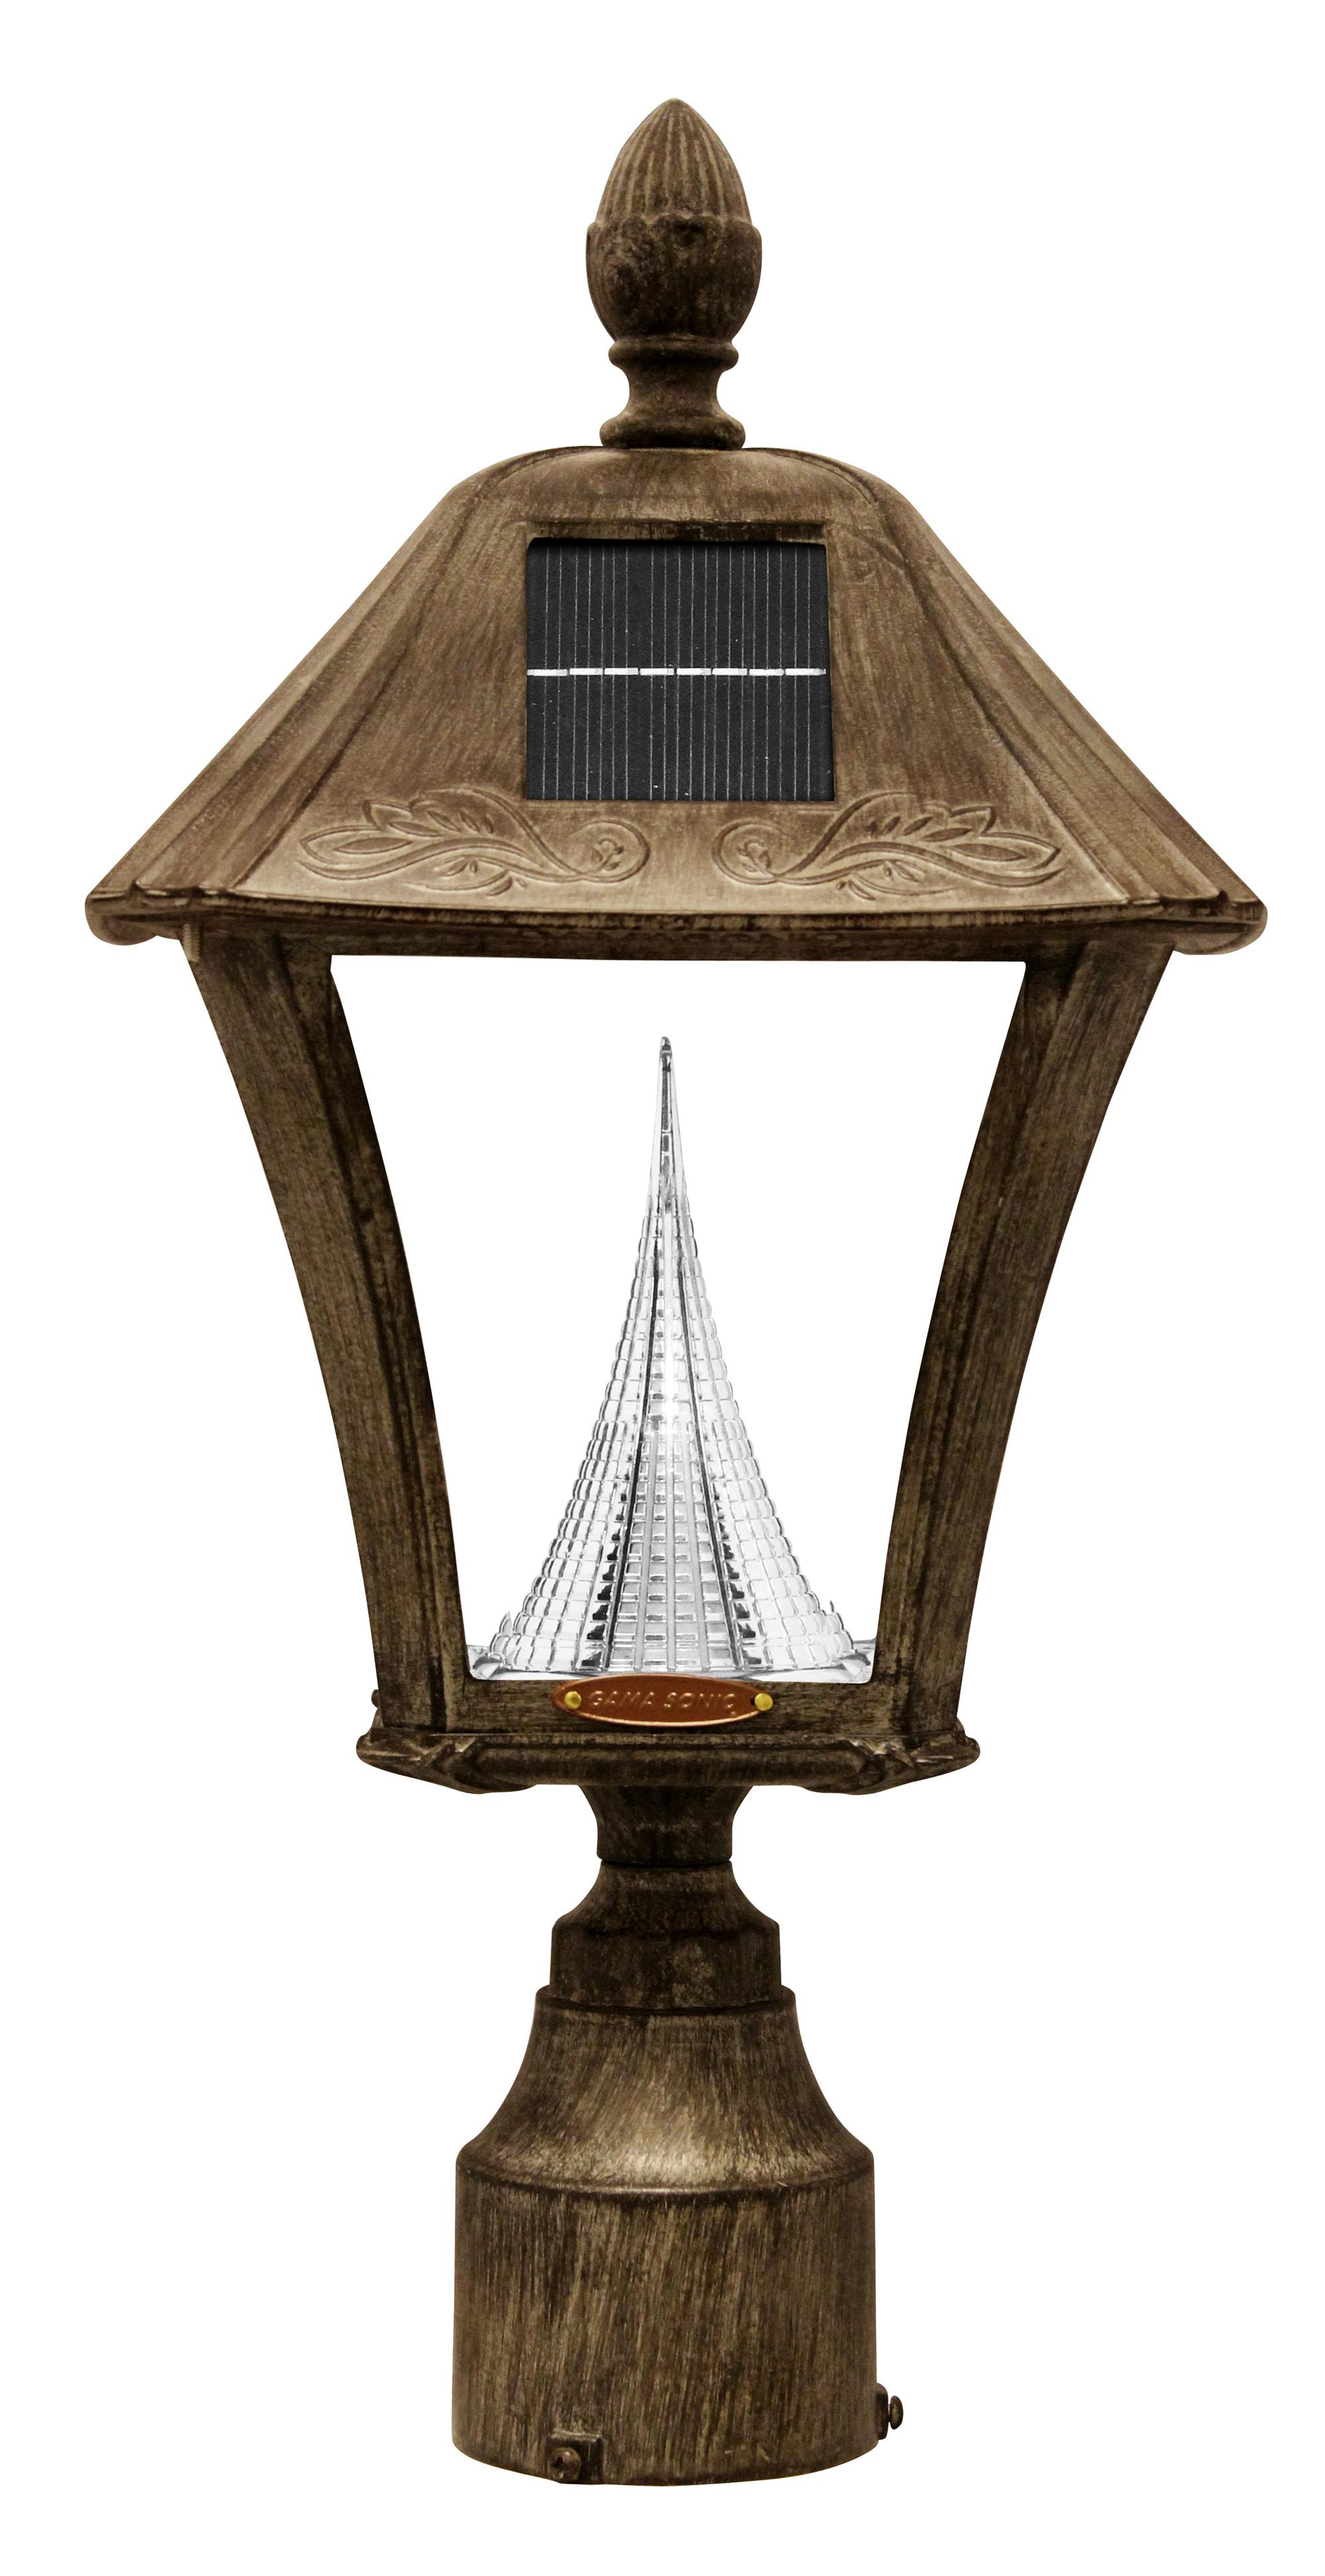 Gama Sonic GS-106FPW Baytown outdoor solar light in